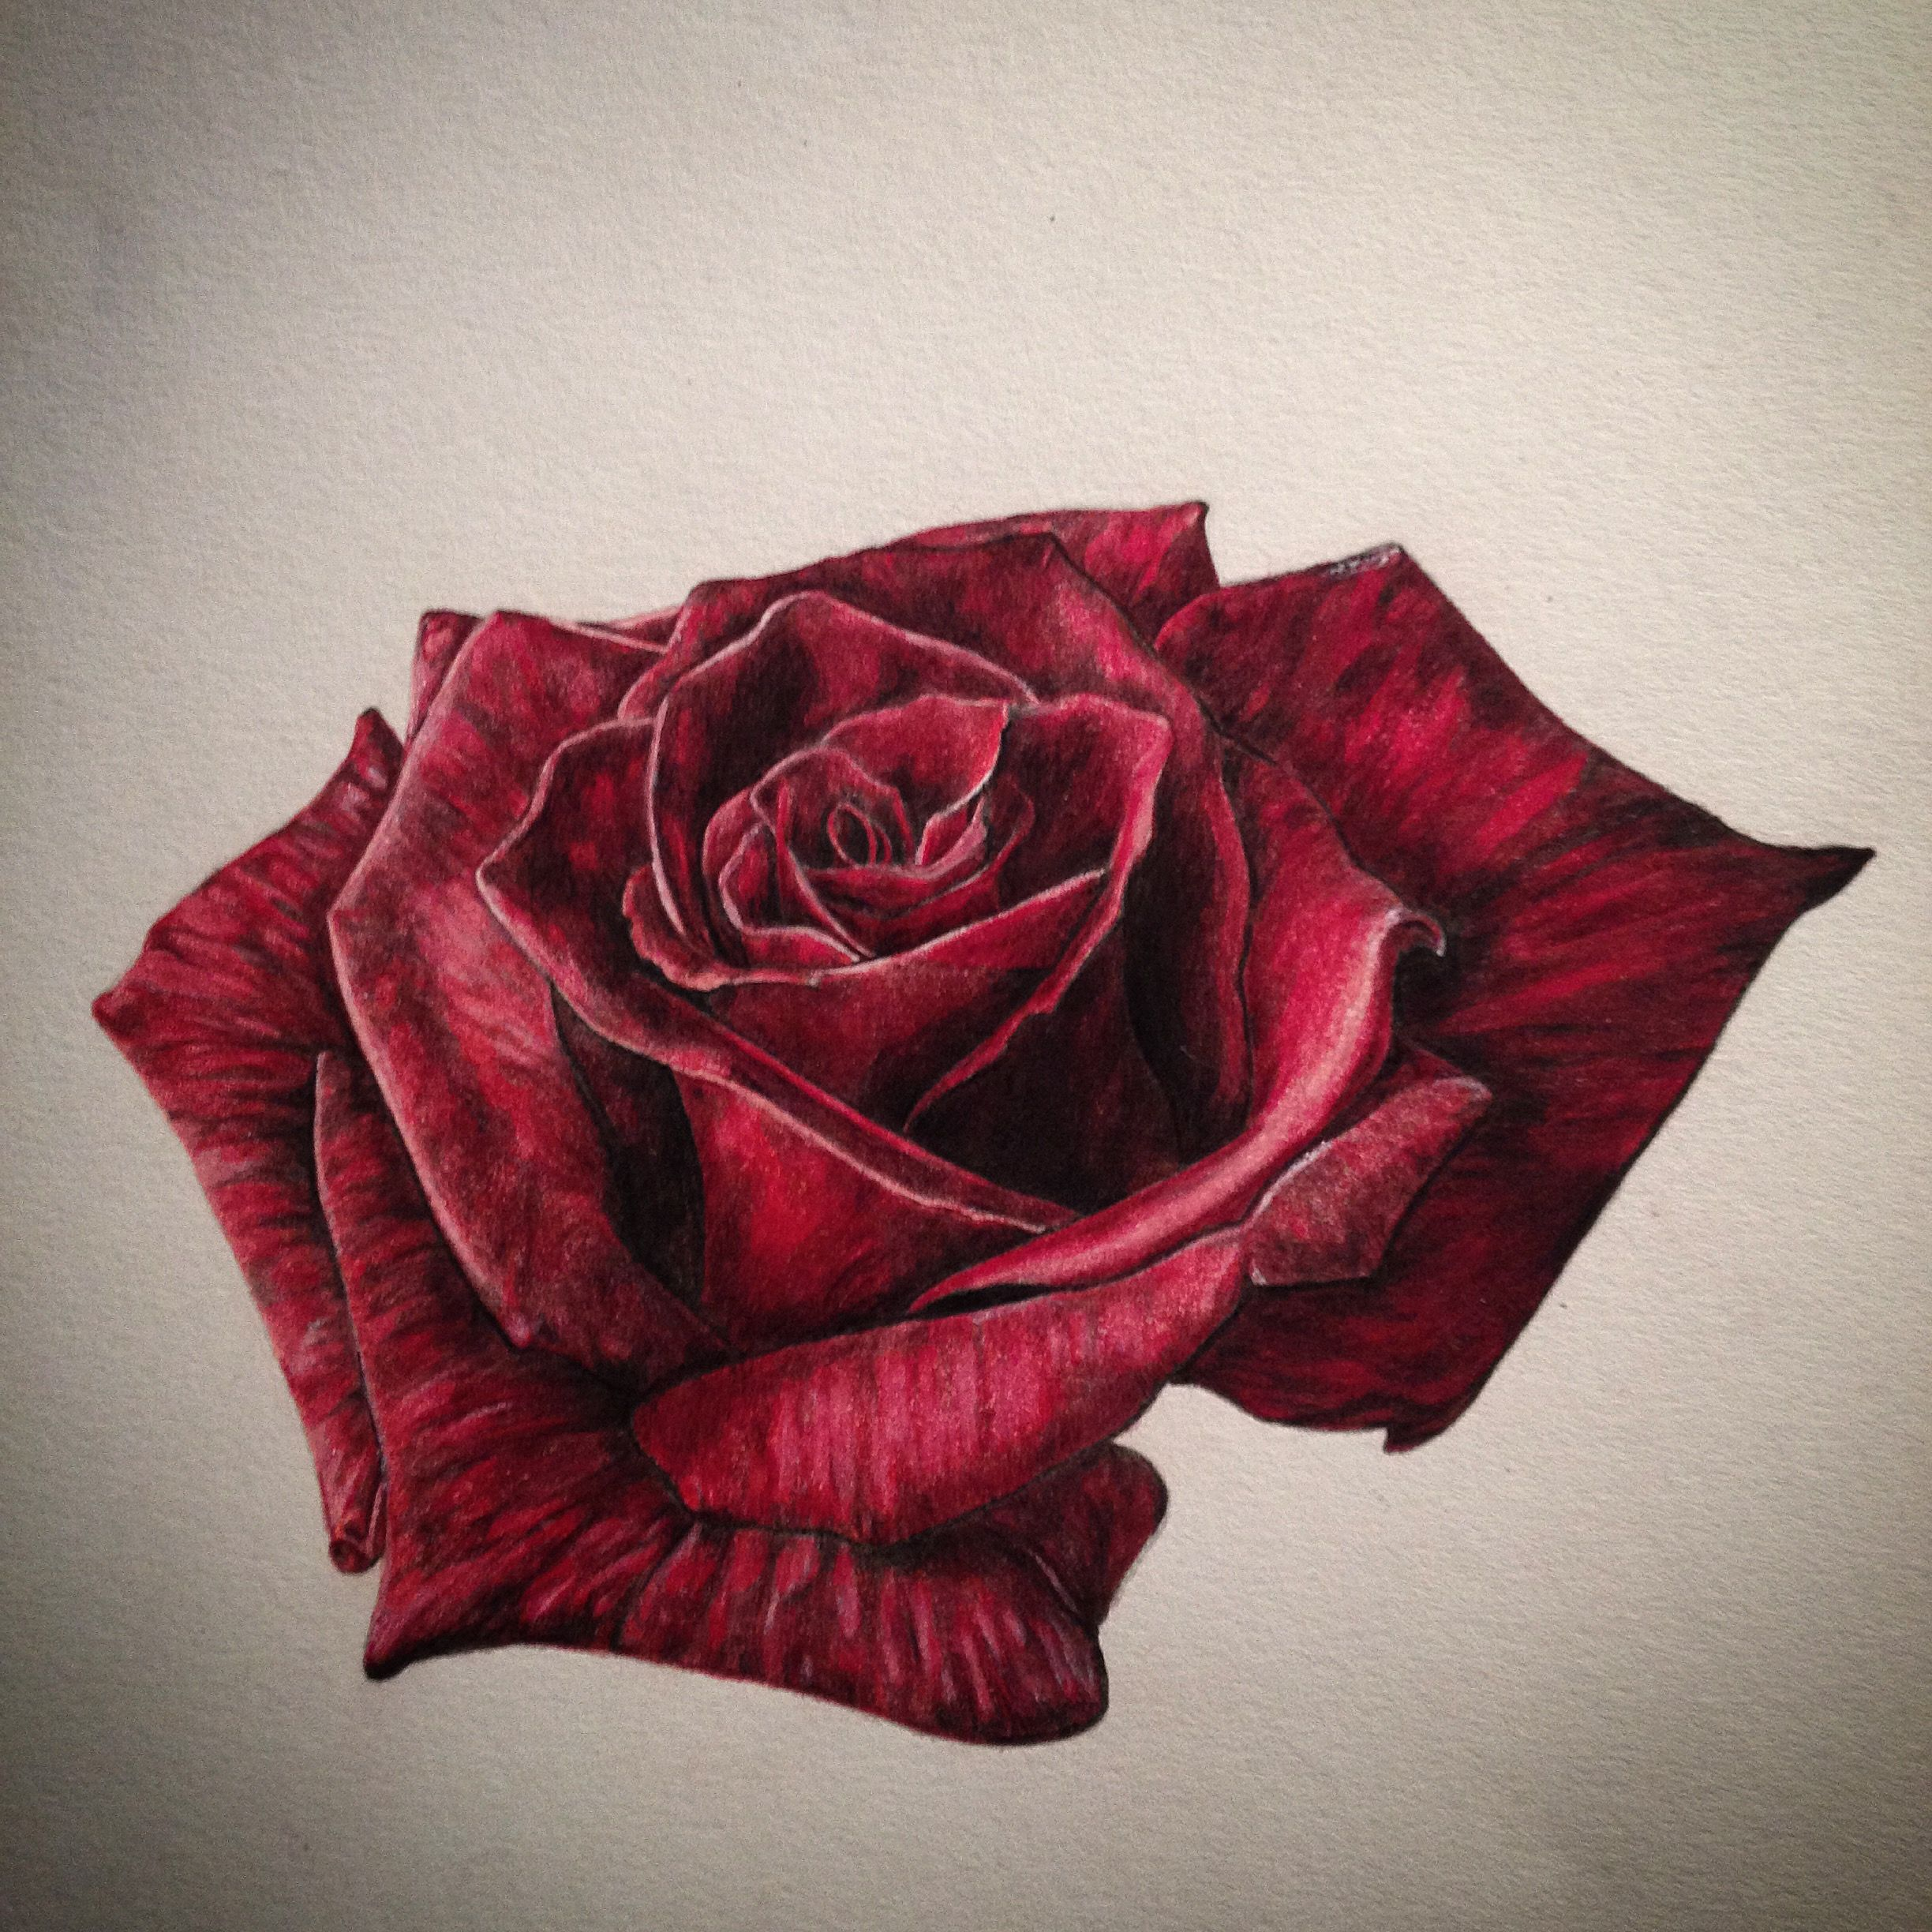 Realistic rose drawing done in colouring pencil